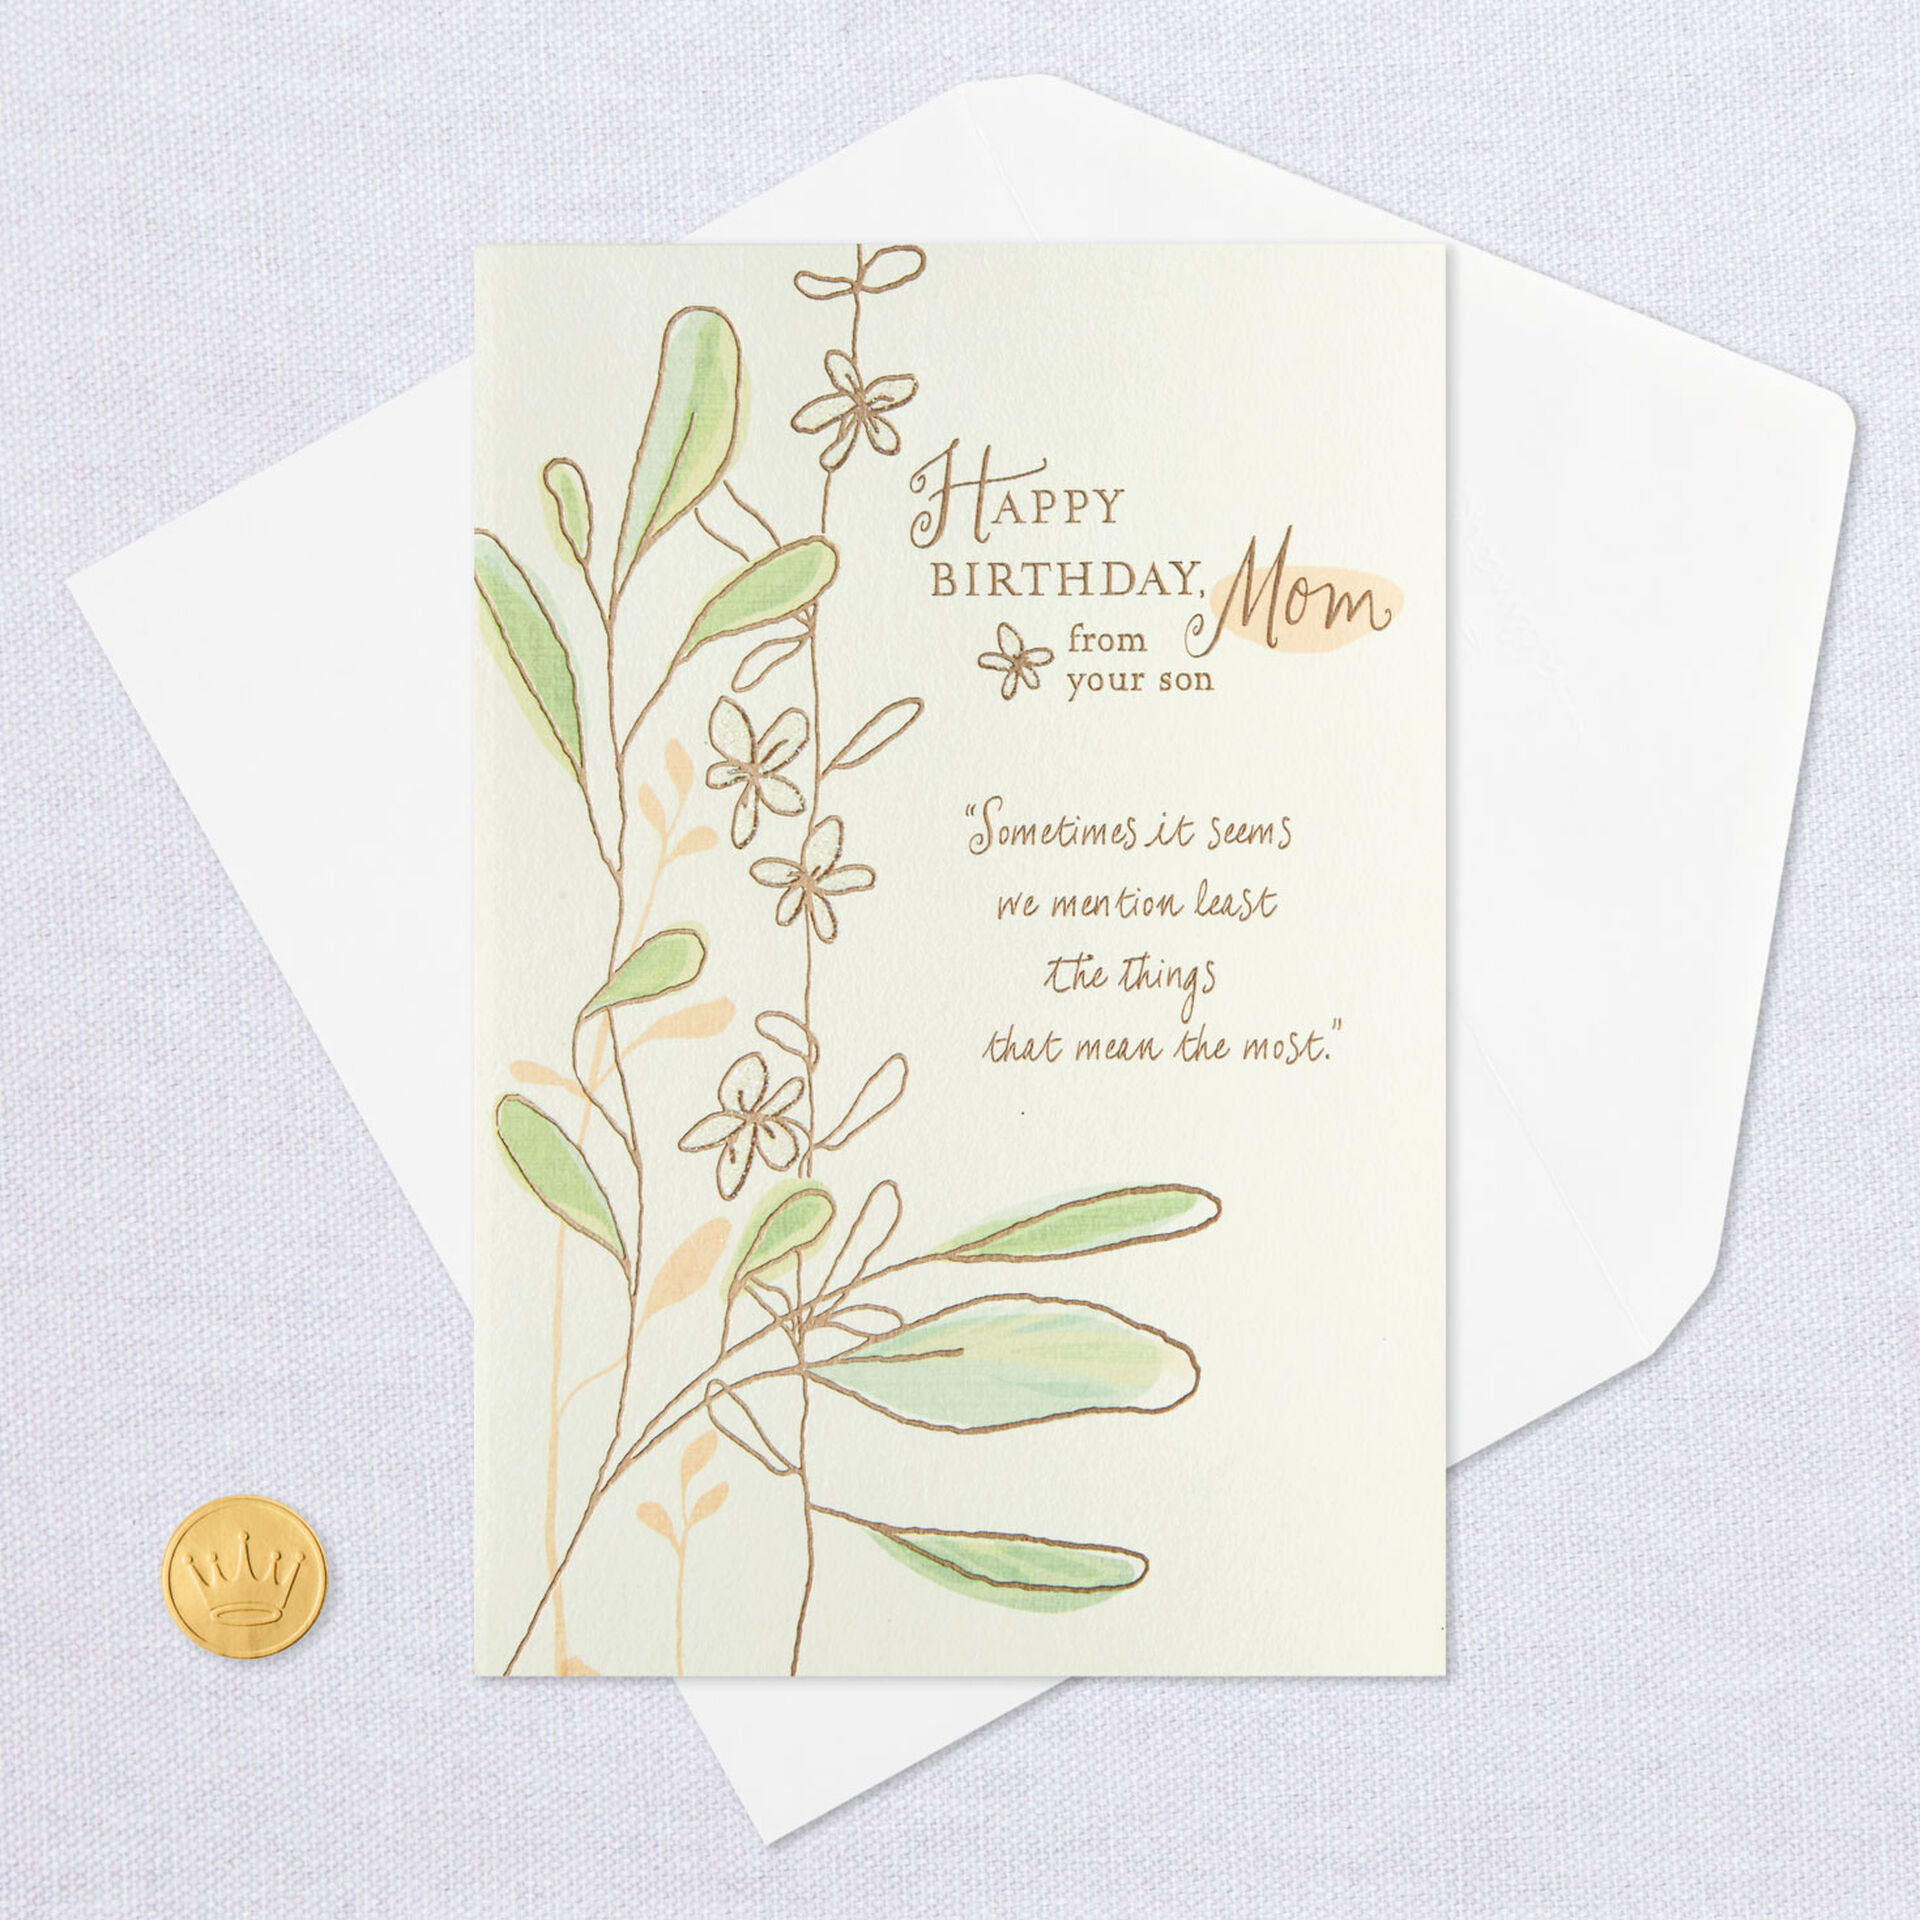 Love And Gratitude Birthday Card For Mom From Son Greeting Cards Hallmark